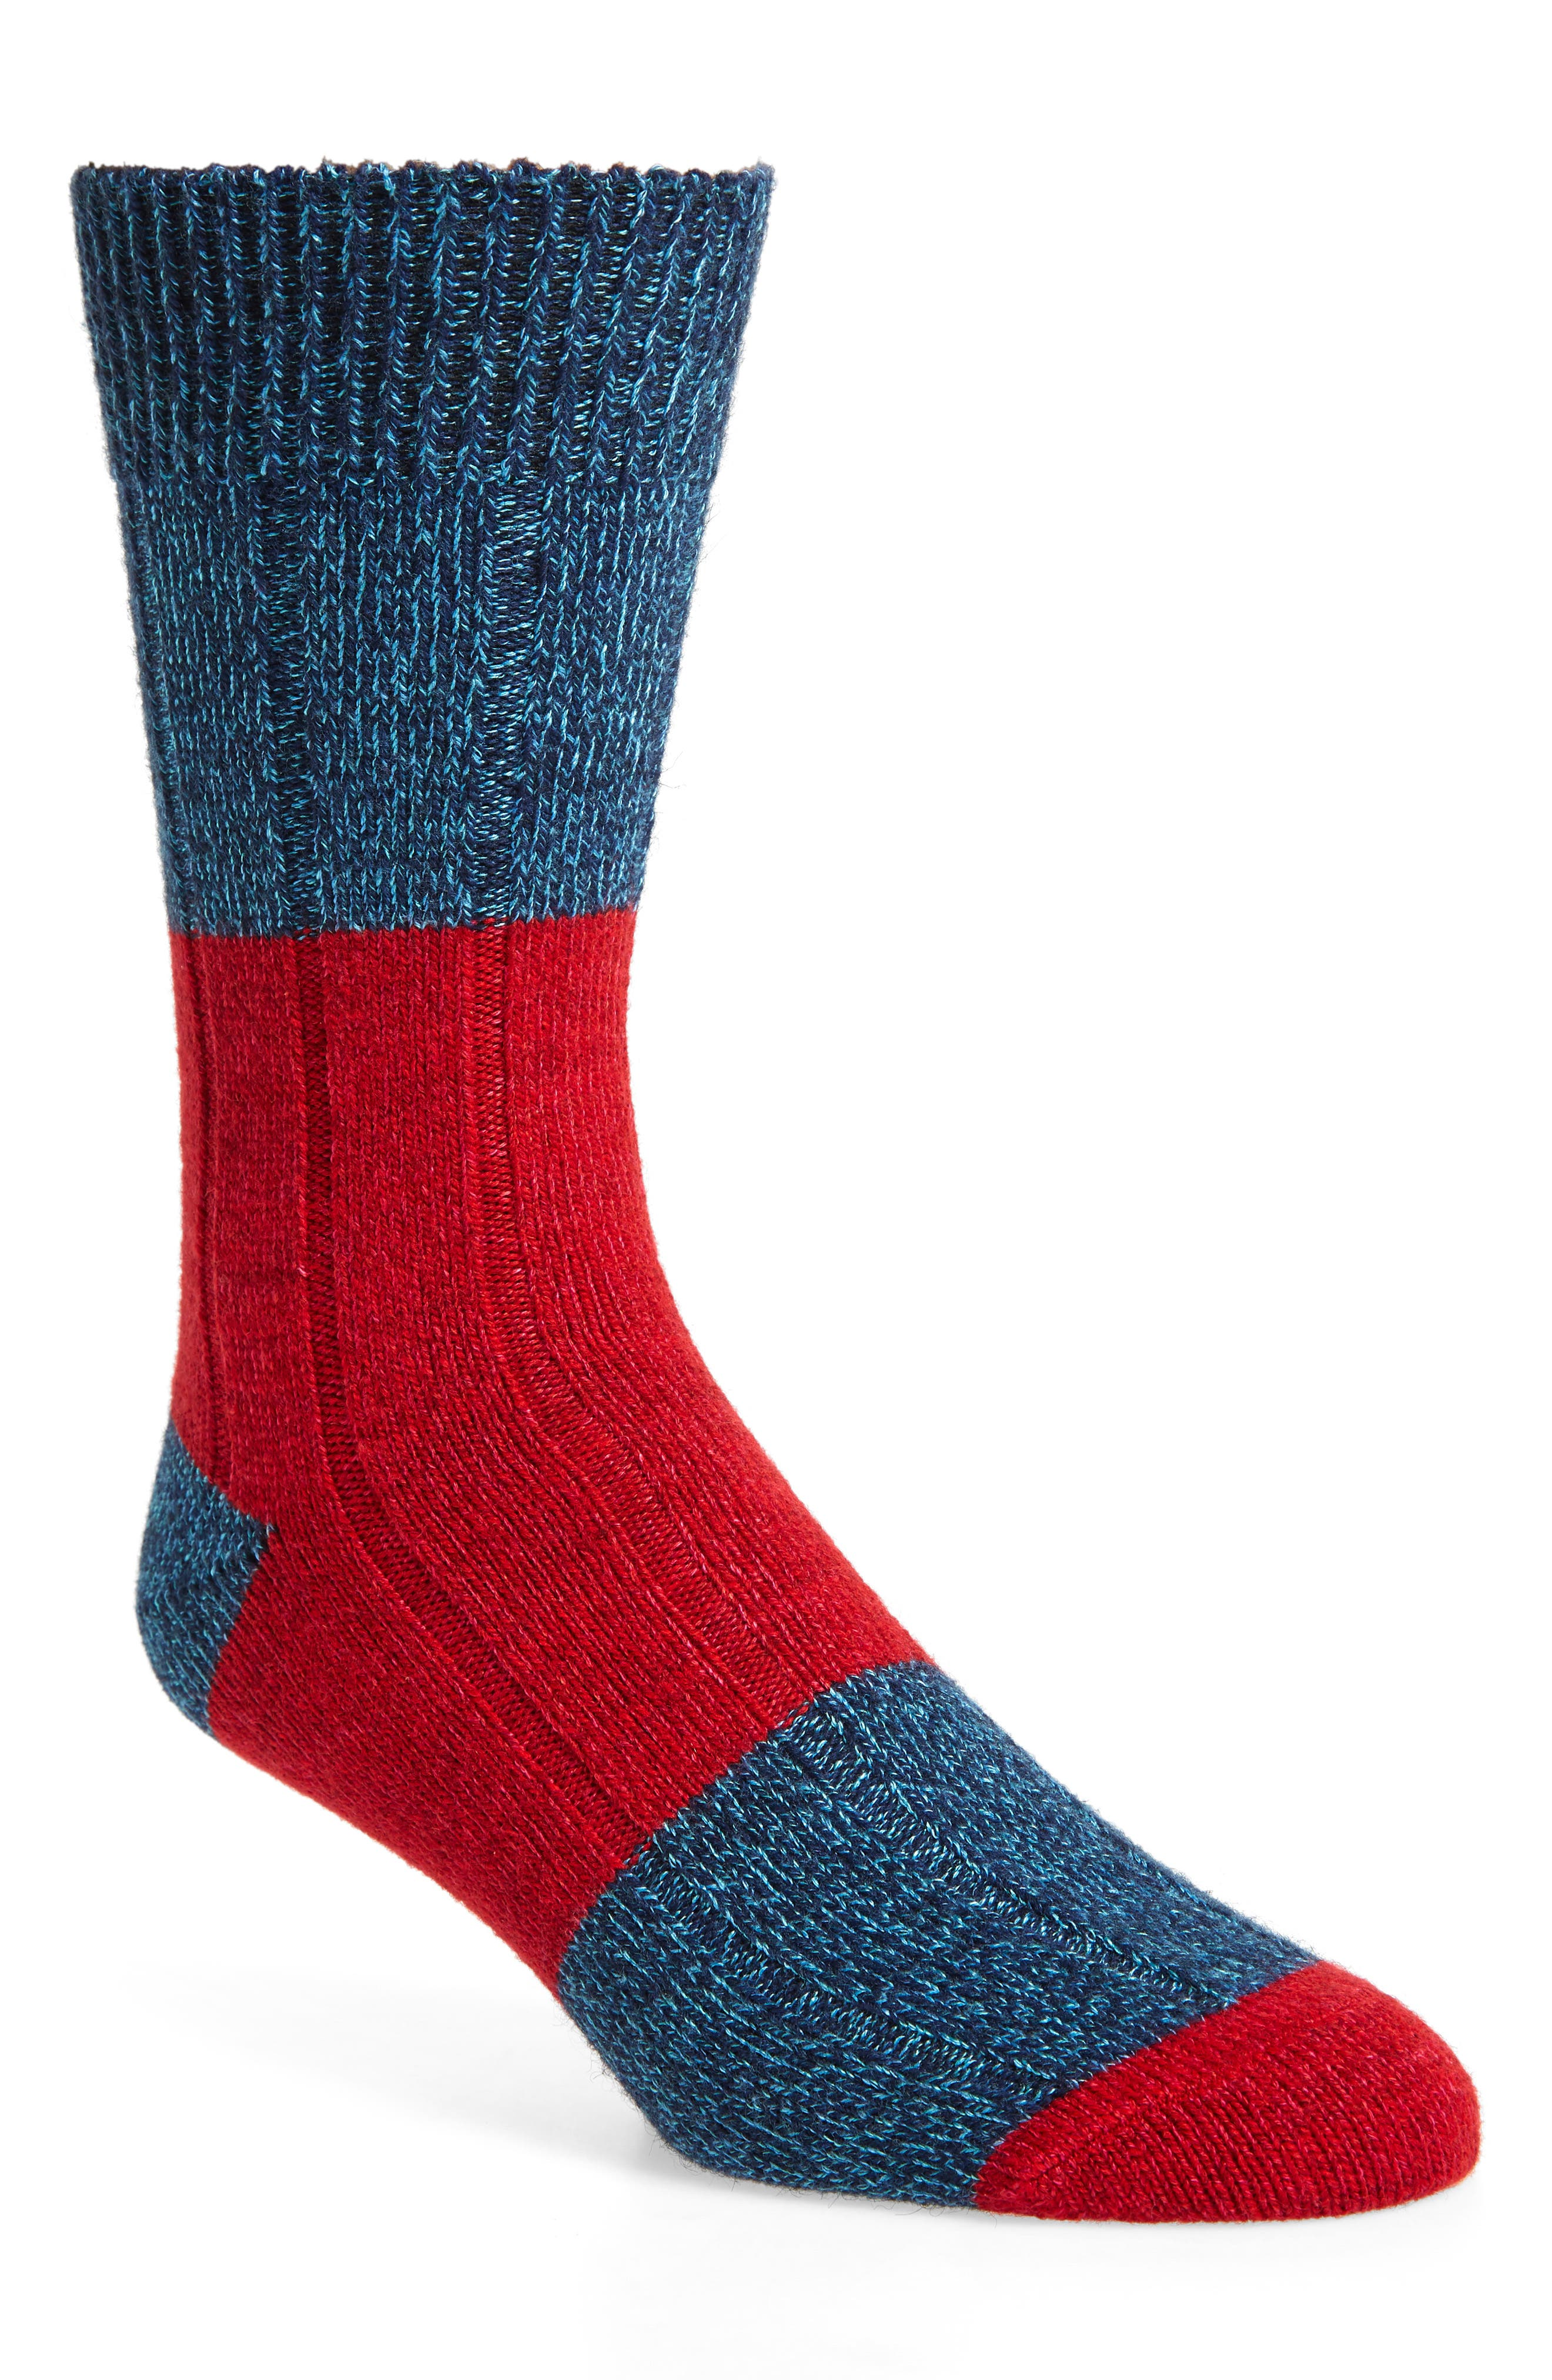 HAPPY SOCKS Thick Colorblock Socks in Red/ Blue